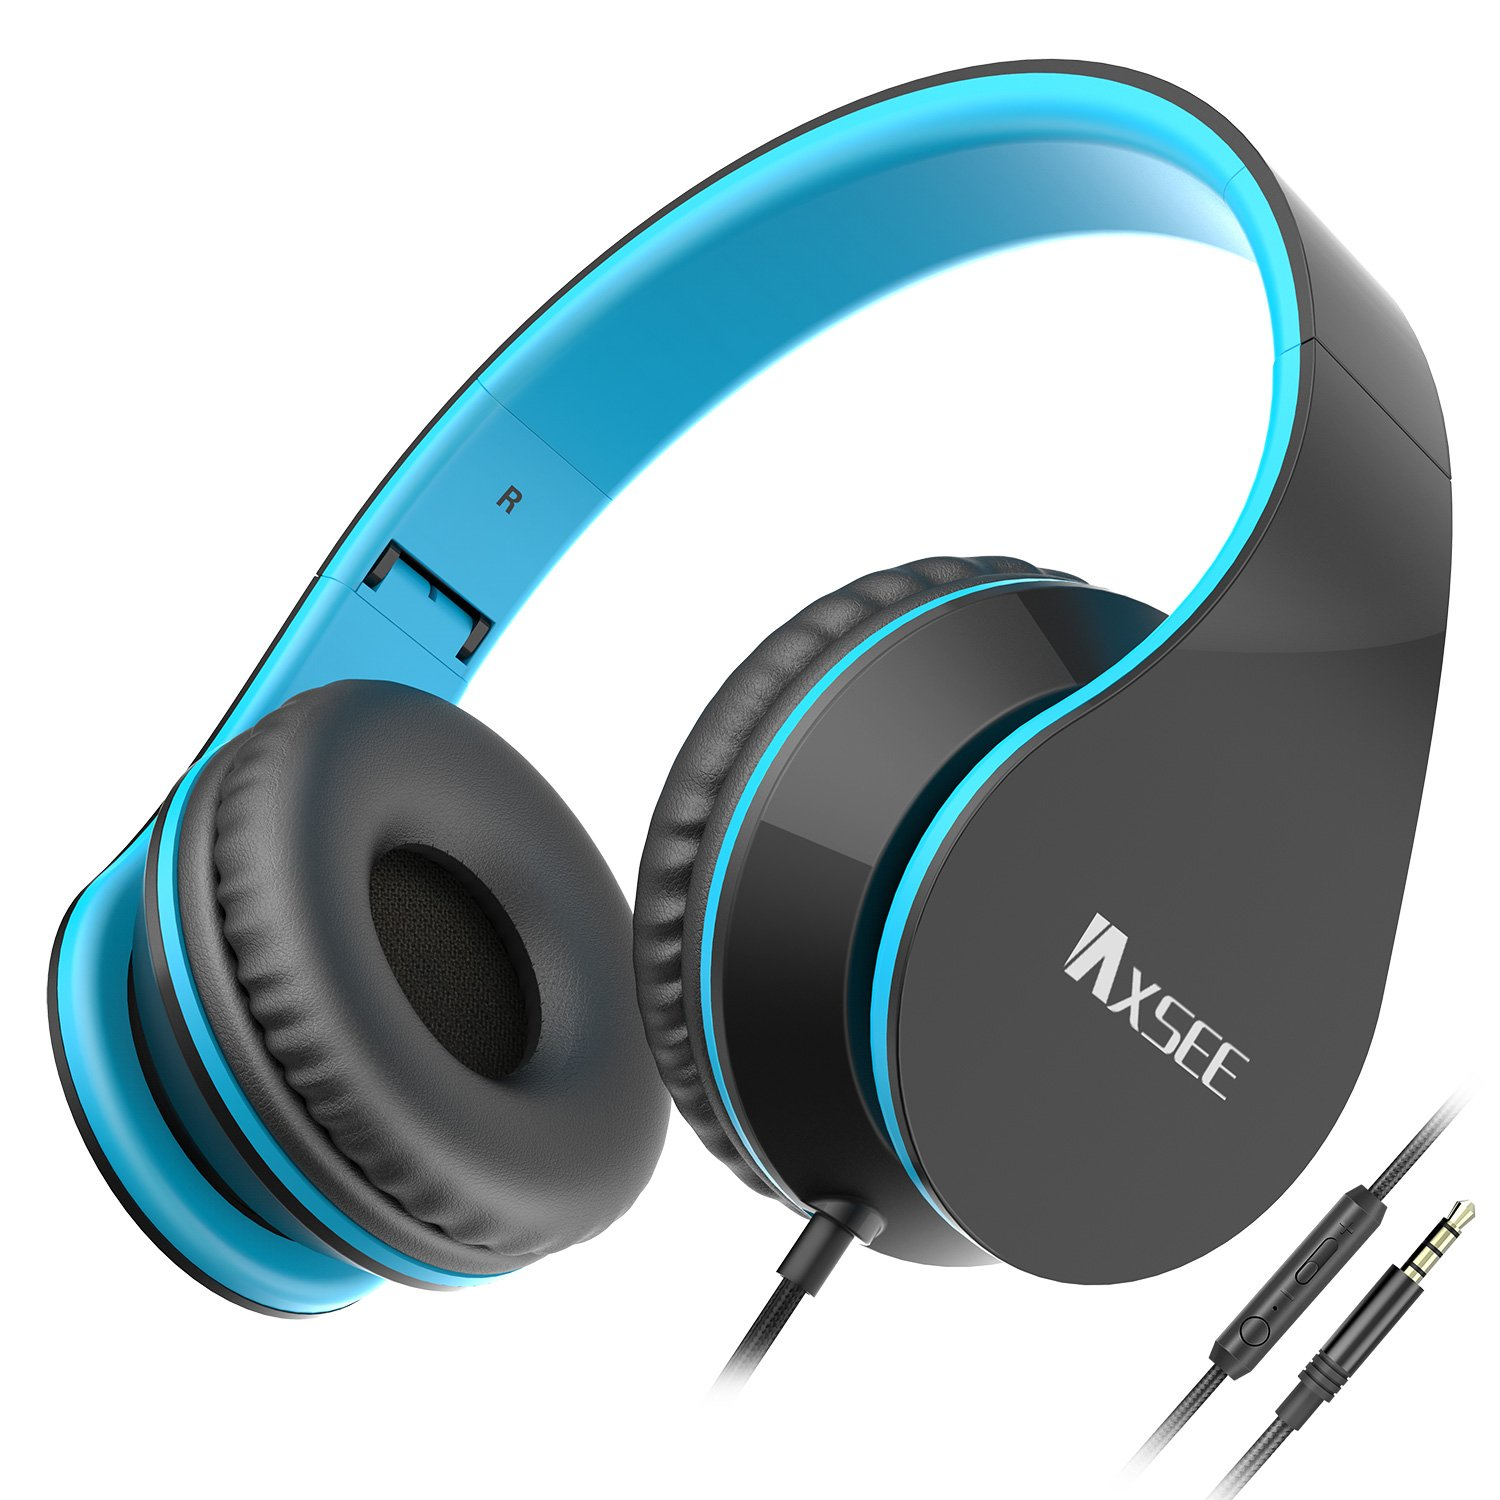 IAXSEE I70 Wired On-ear Headphones with Microphone and Volume Control Stereo Lightweight Adjustable Headsets for iPad iPod Android Smartphones Laptop Mp3(Black Blue) by IAXSEE